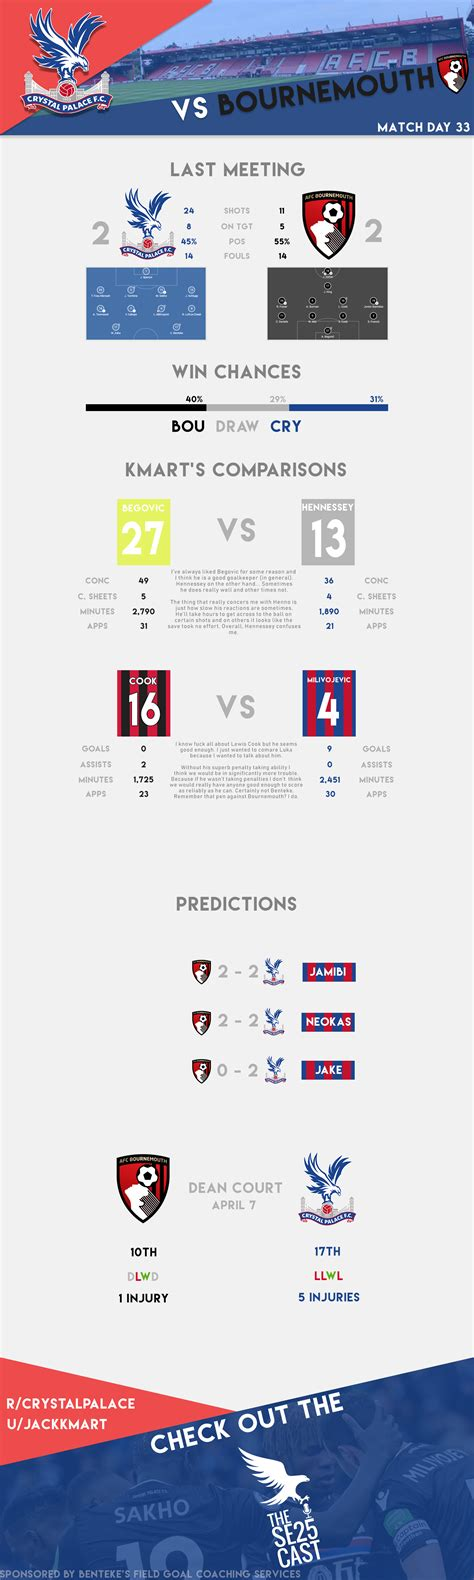 Bournemouth v Crystal Palace : crystalpalace